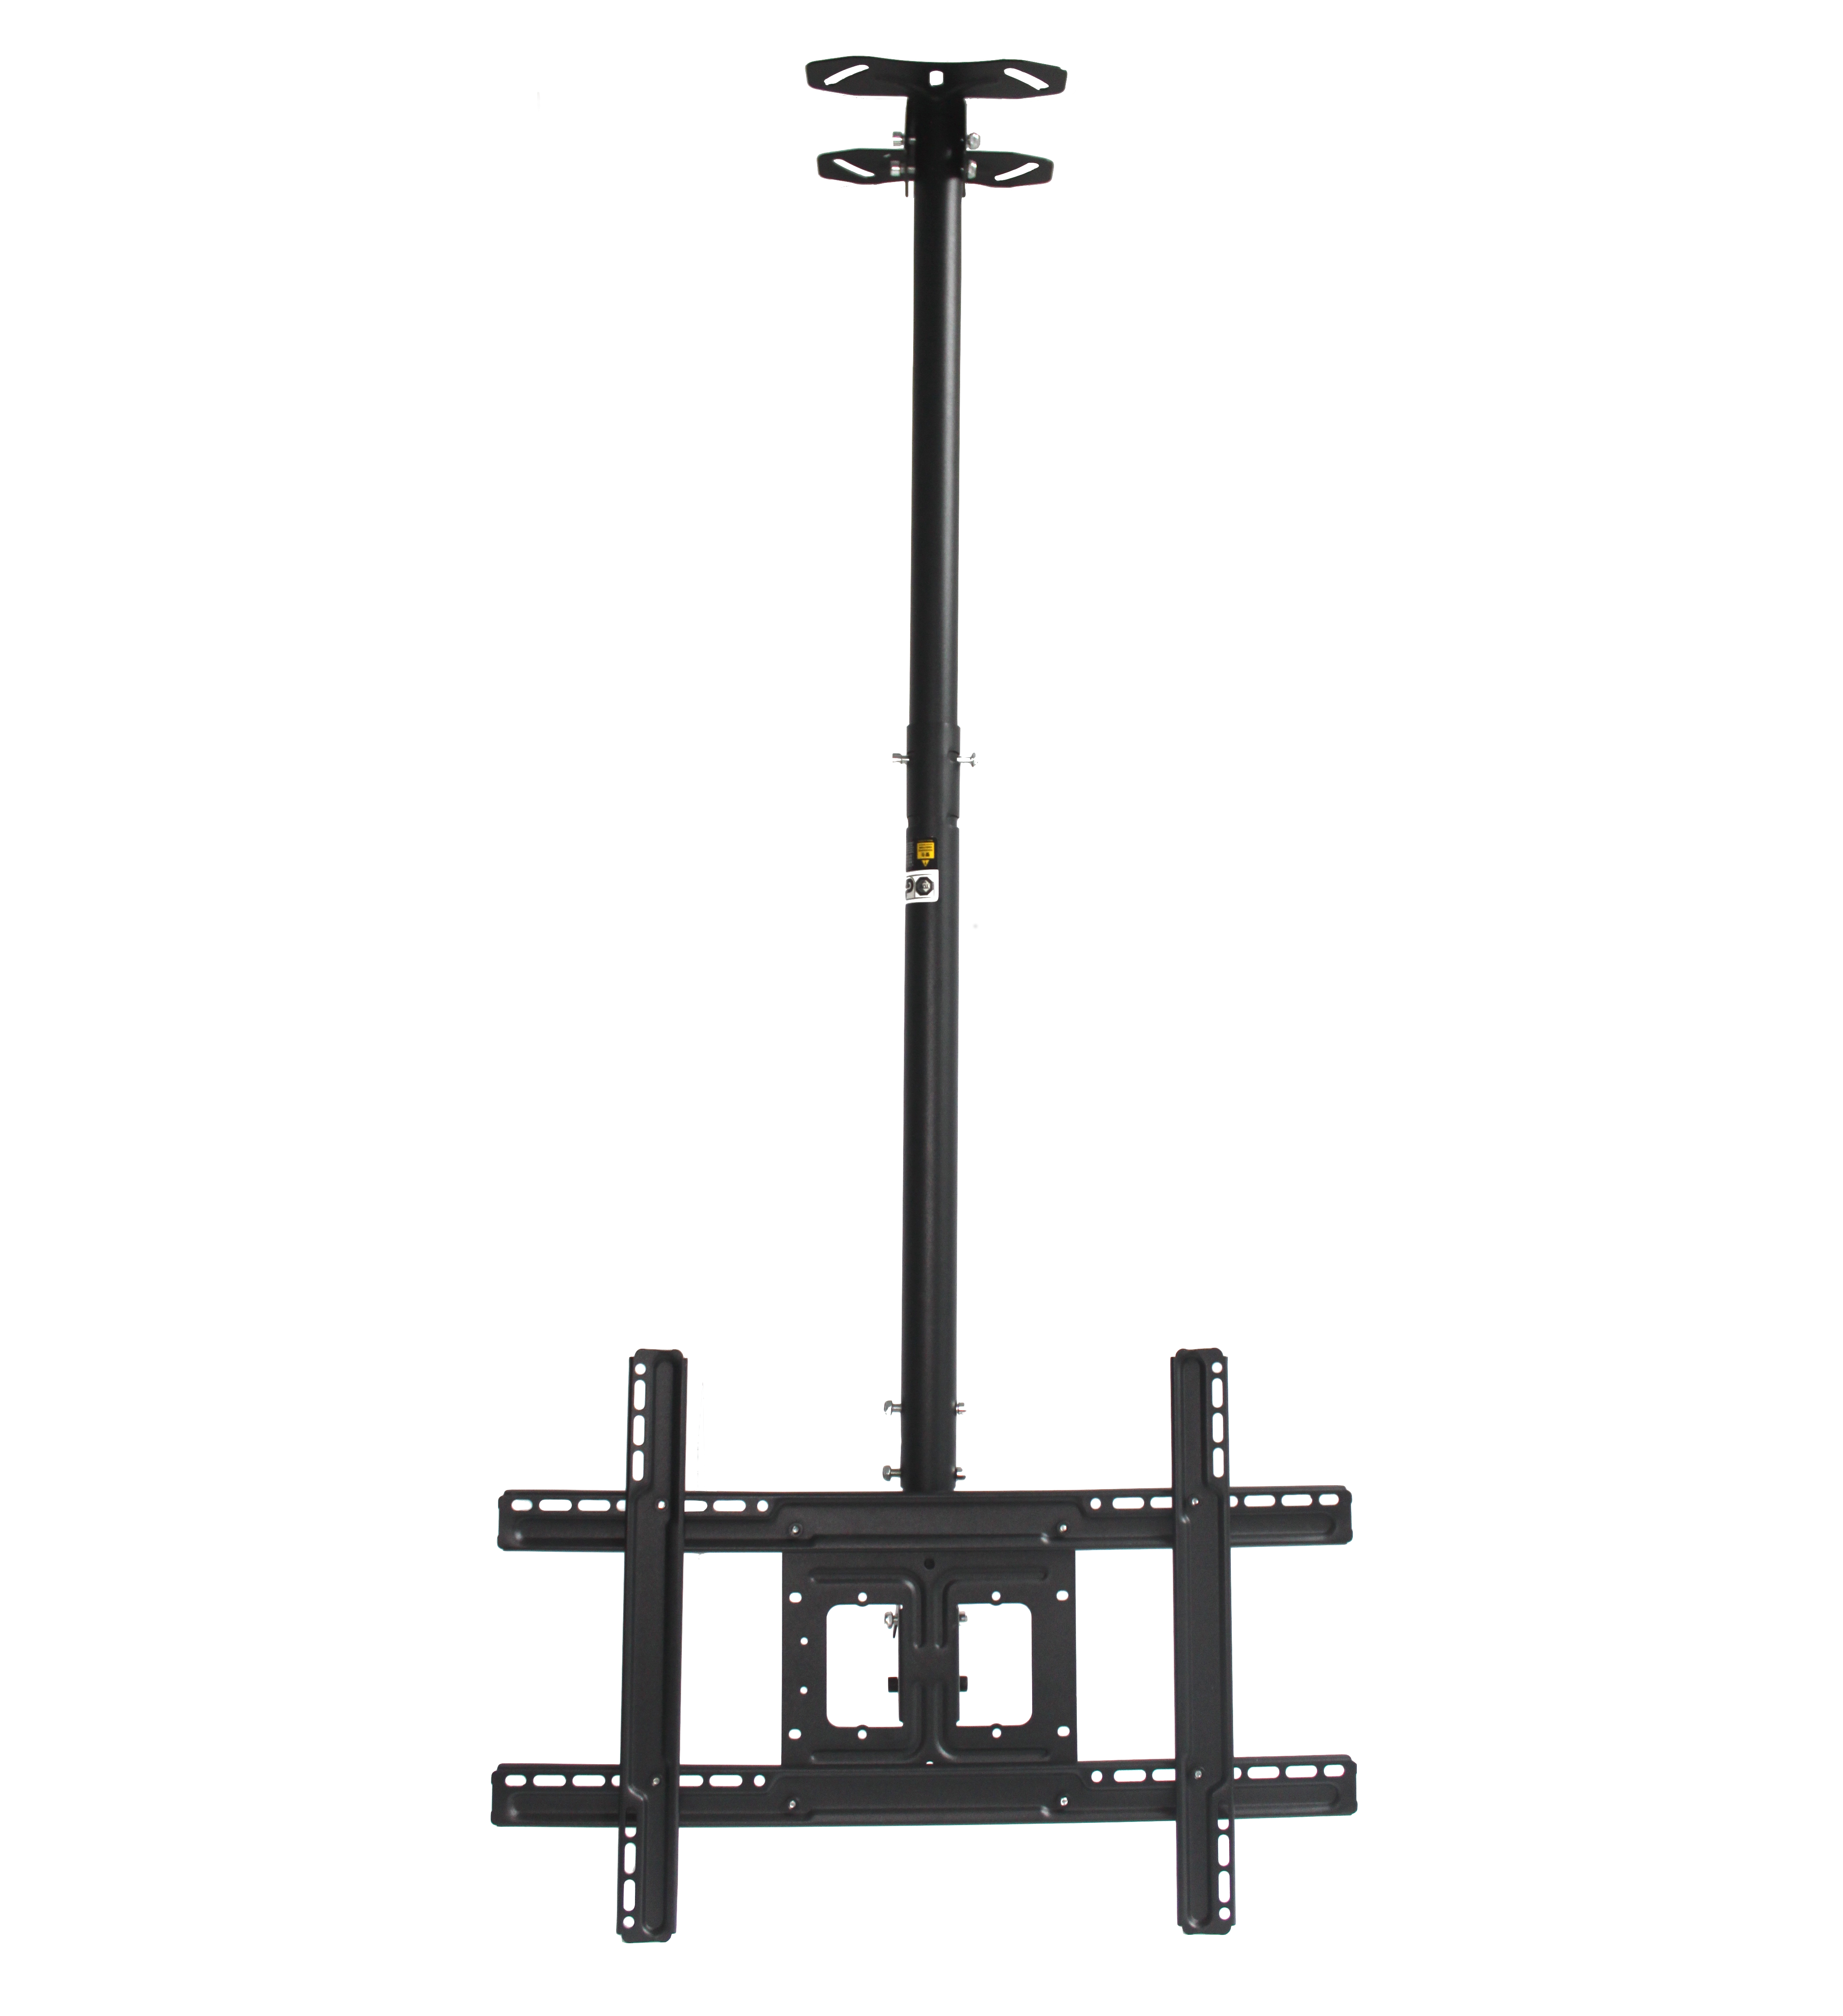 for bracket shop stand wall displays up mount ceiling monitor to tv